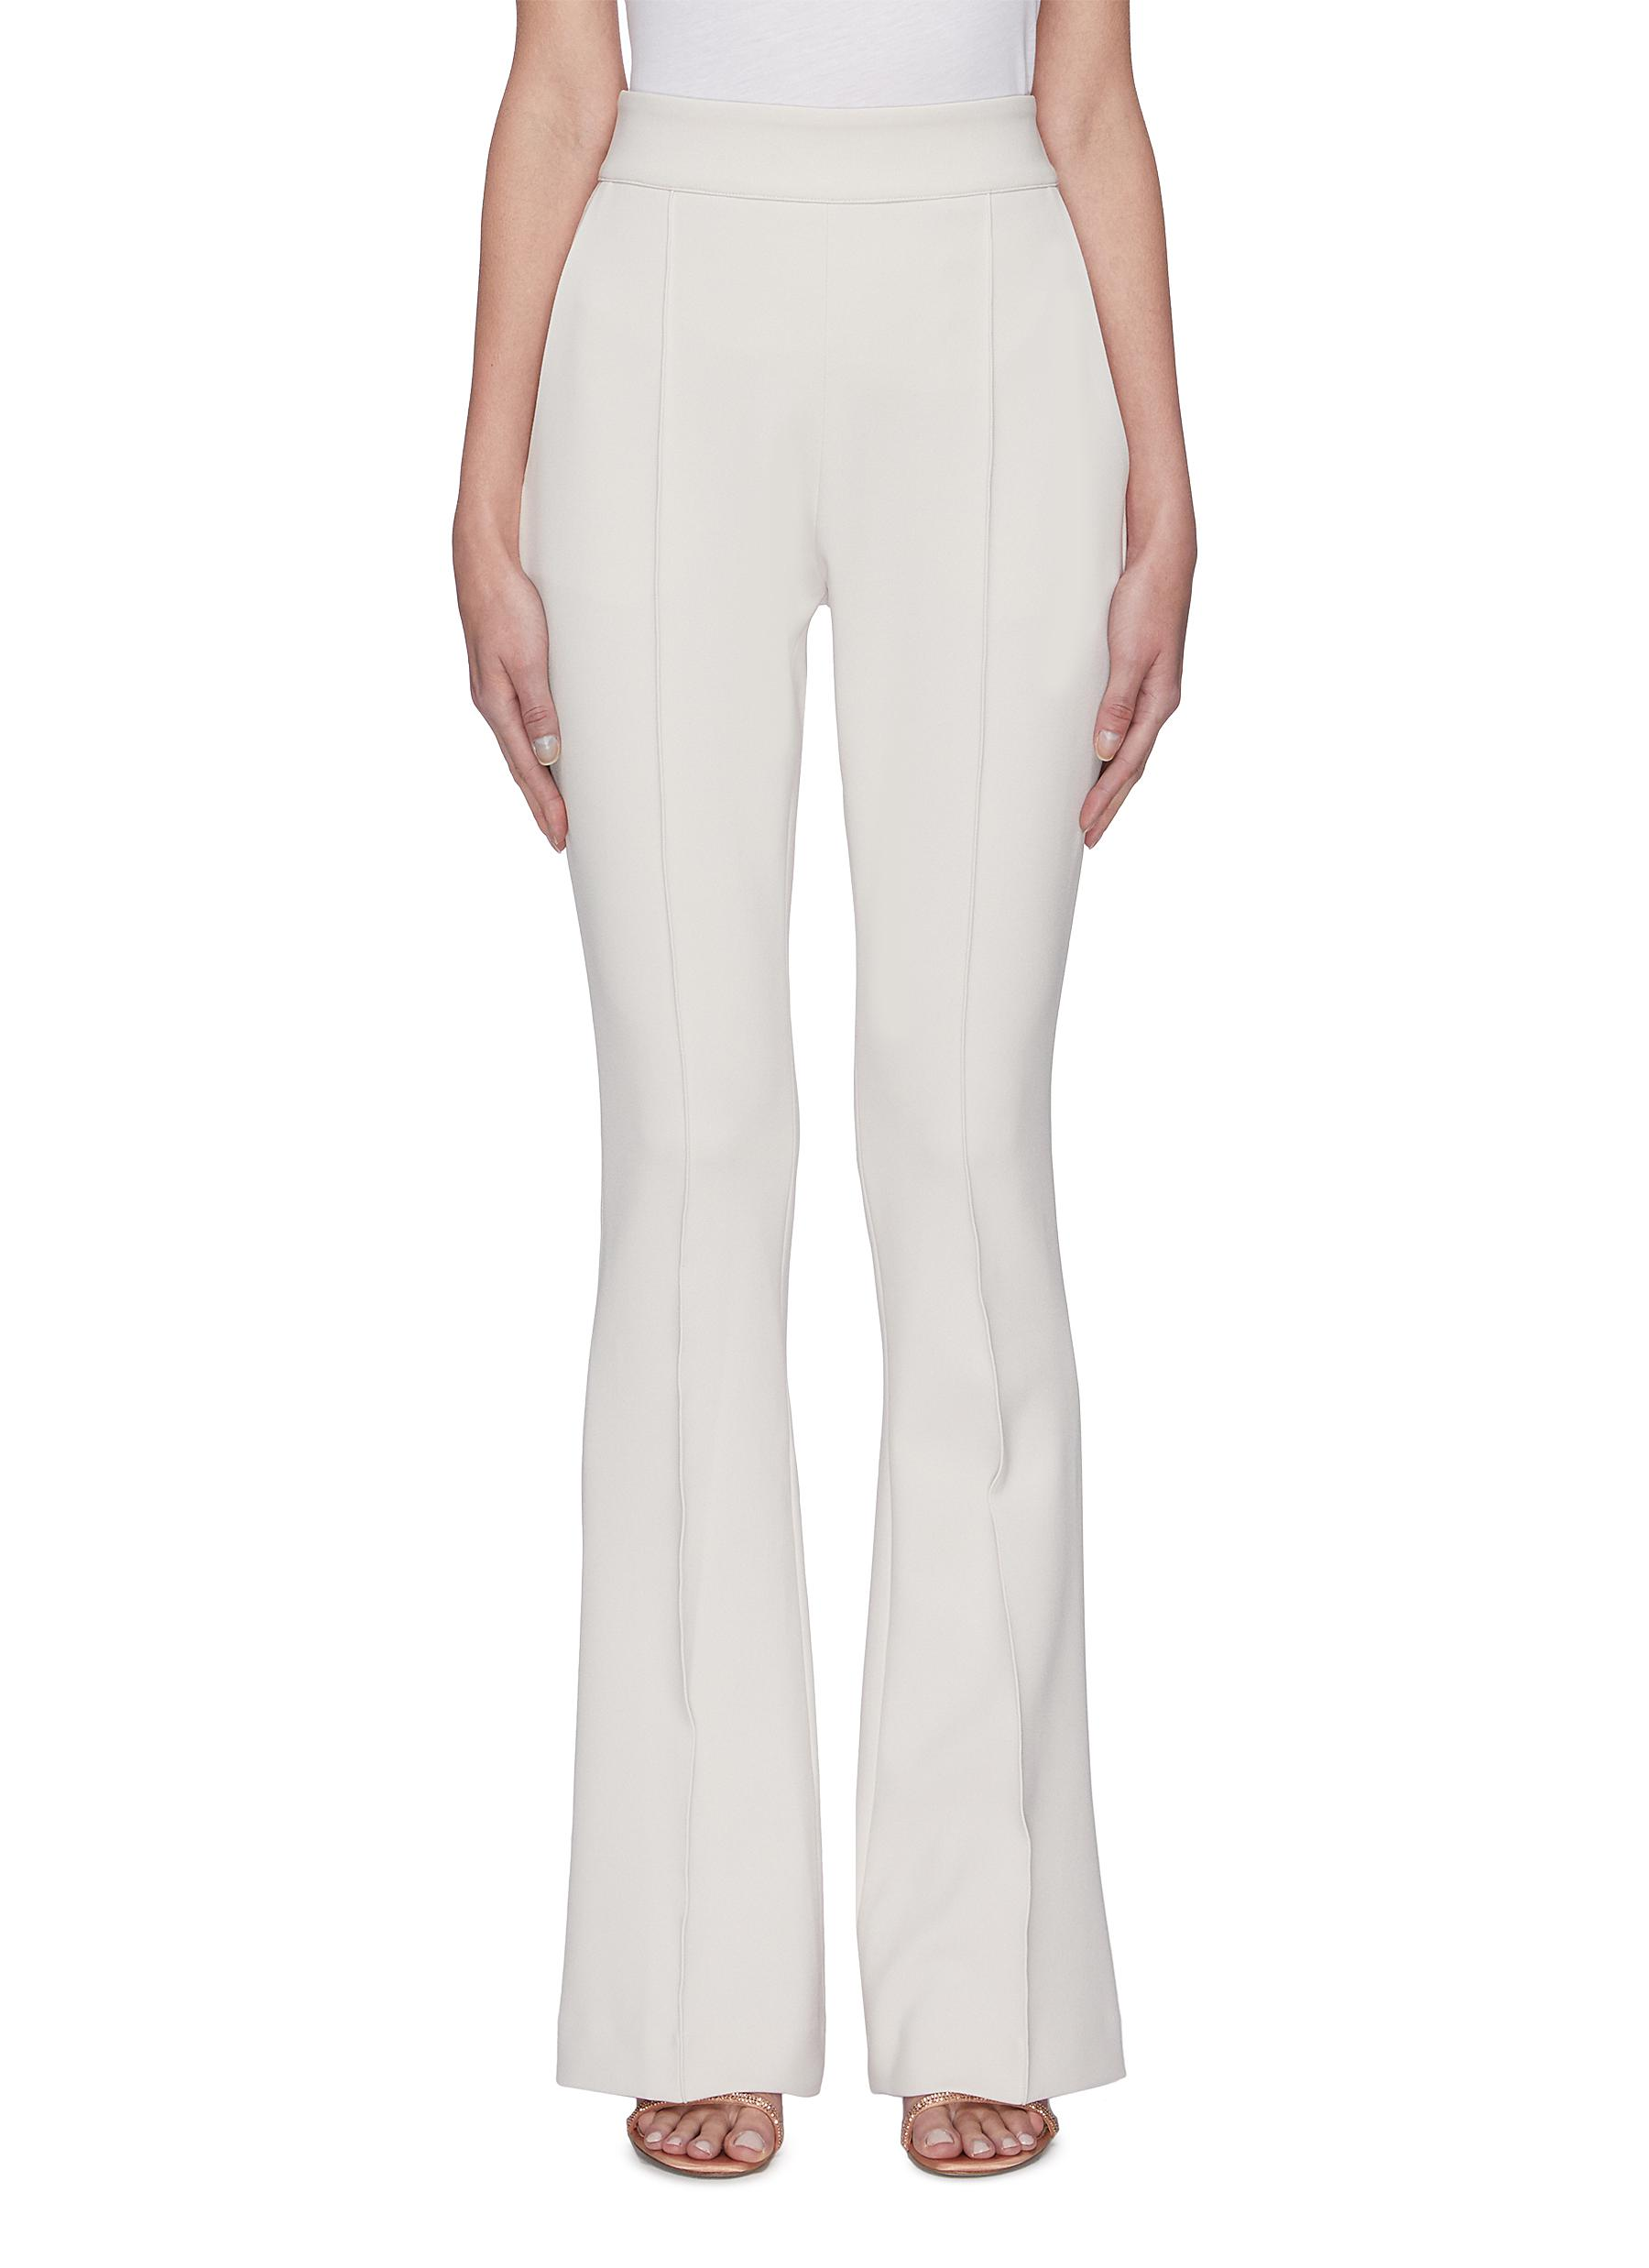 Buy Maticevski Pants & Shorts Industry' flare suiting pants